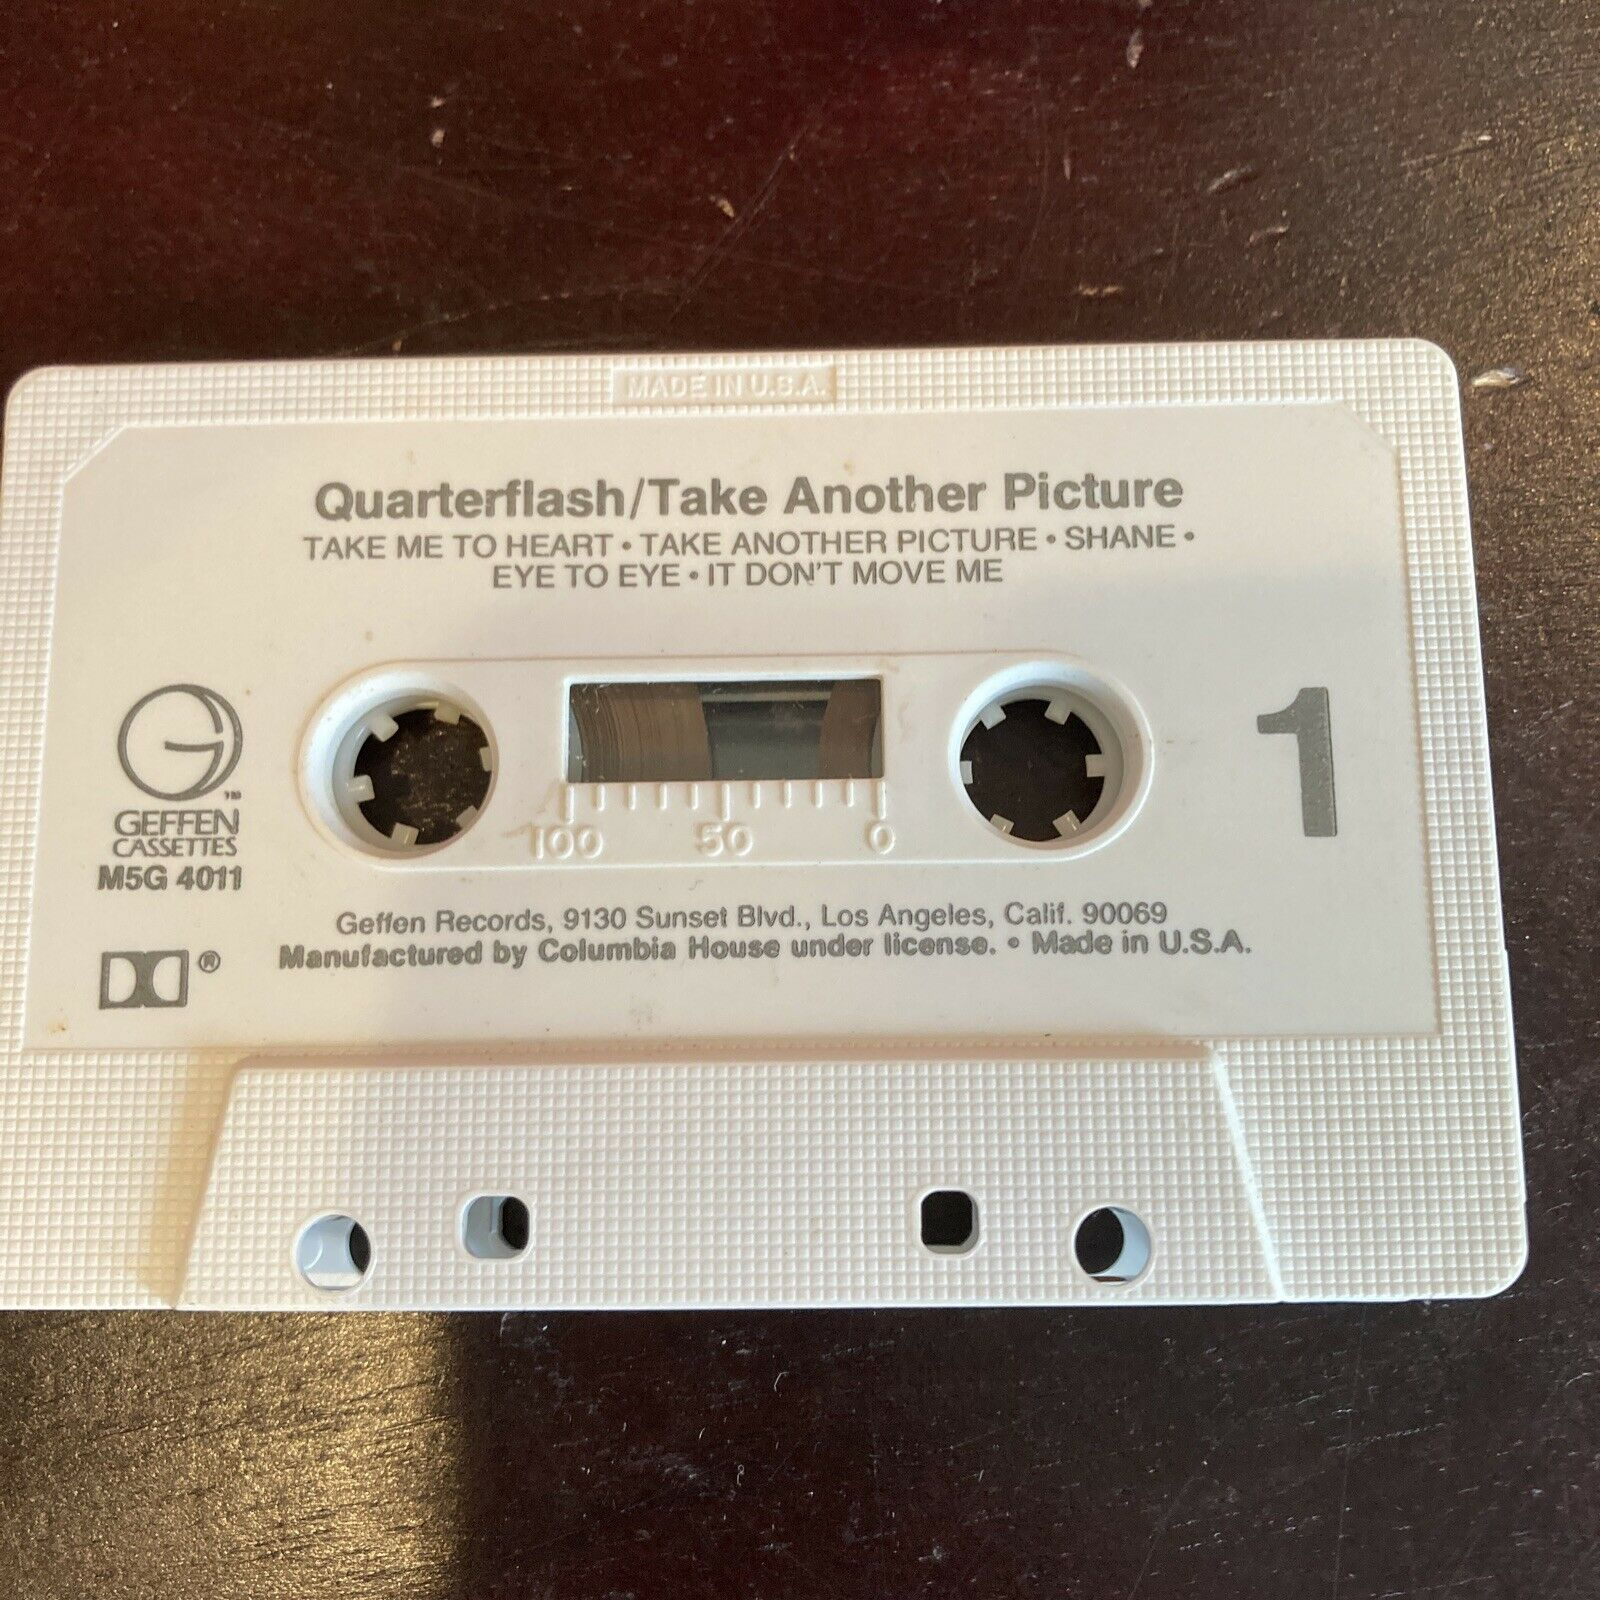 Quarterflash Take Another Picture Vintage Cassette 80s Classic Rock New Wave